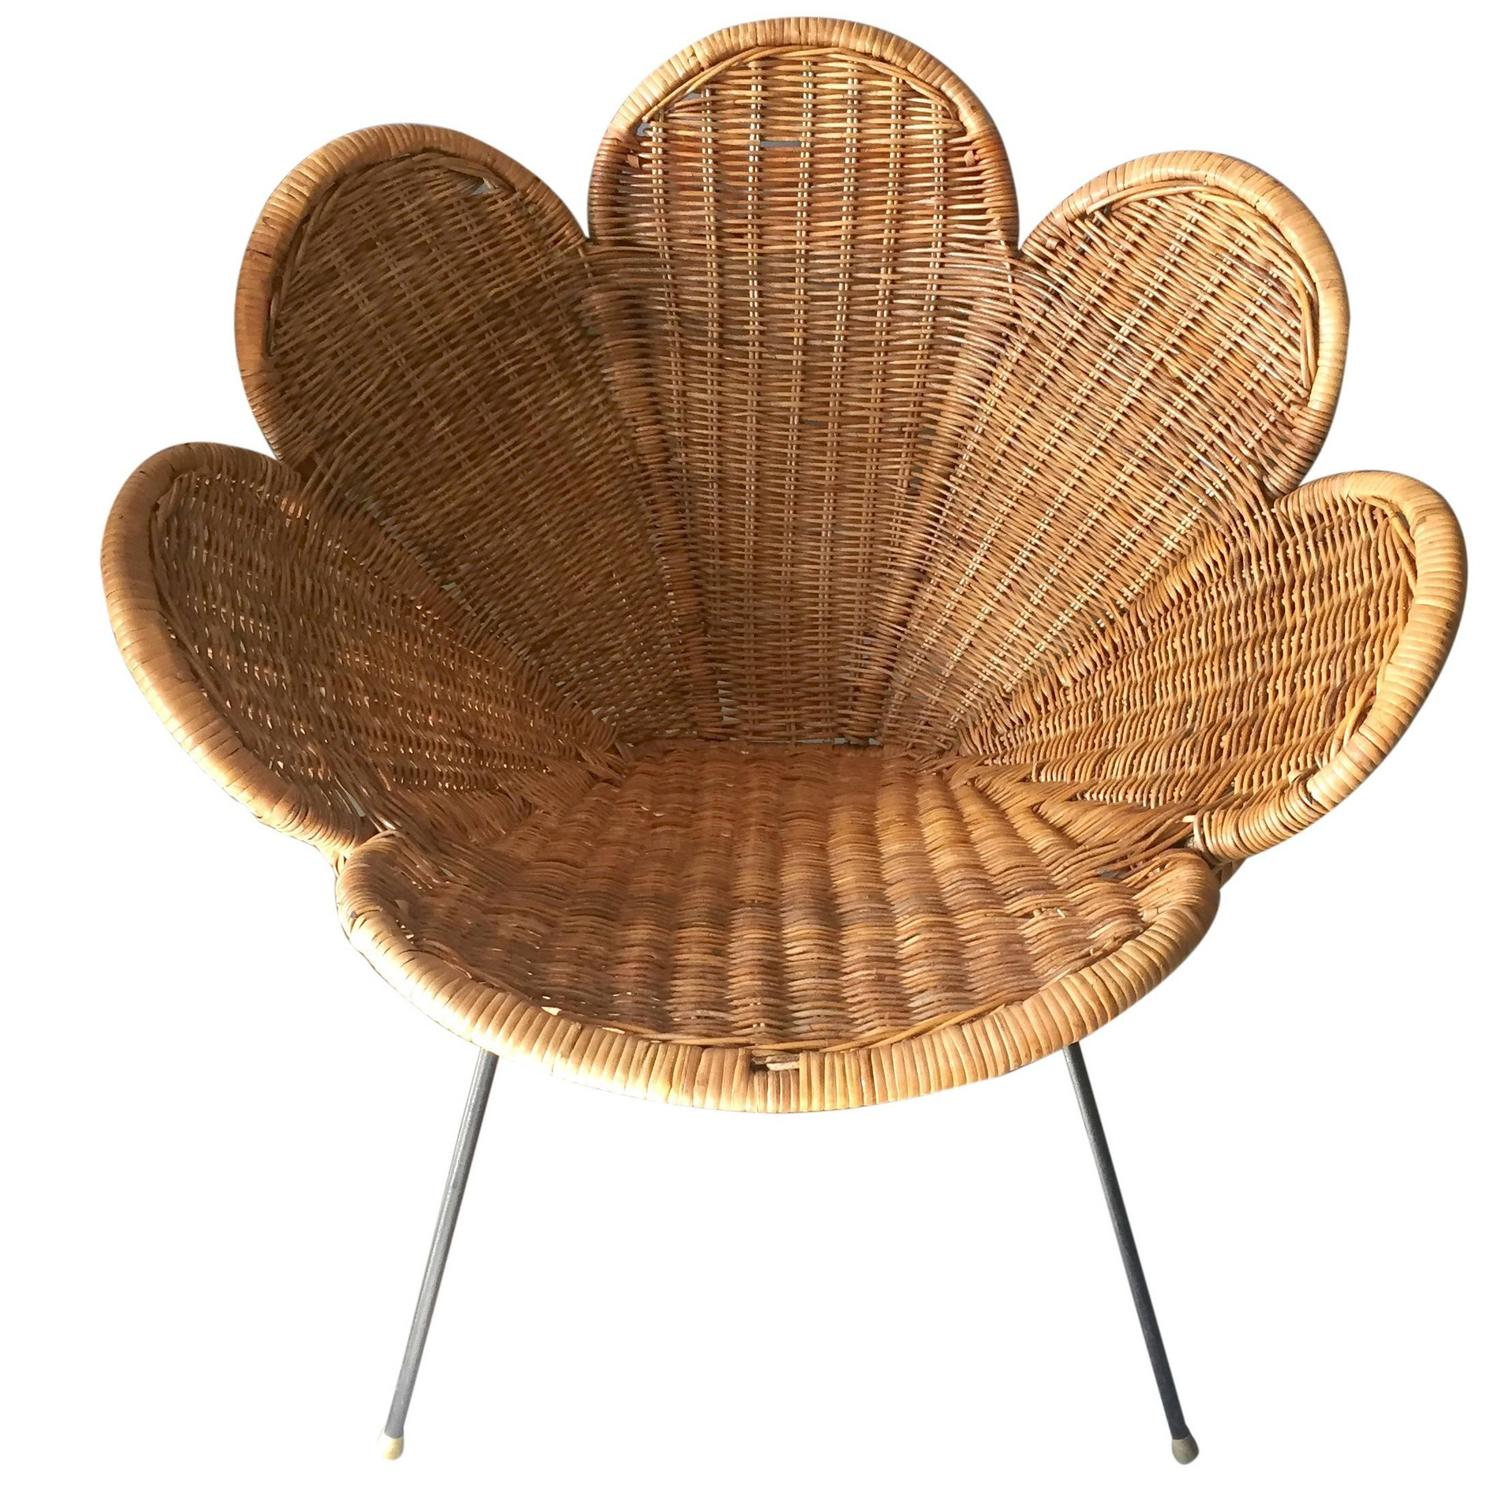 Flower Chair Rattan And Iron Flower Chair For Sale At 1stdibs